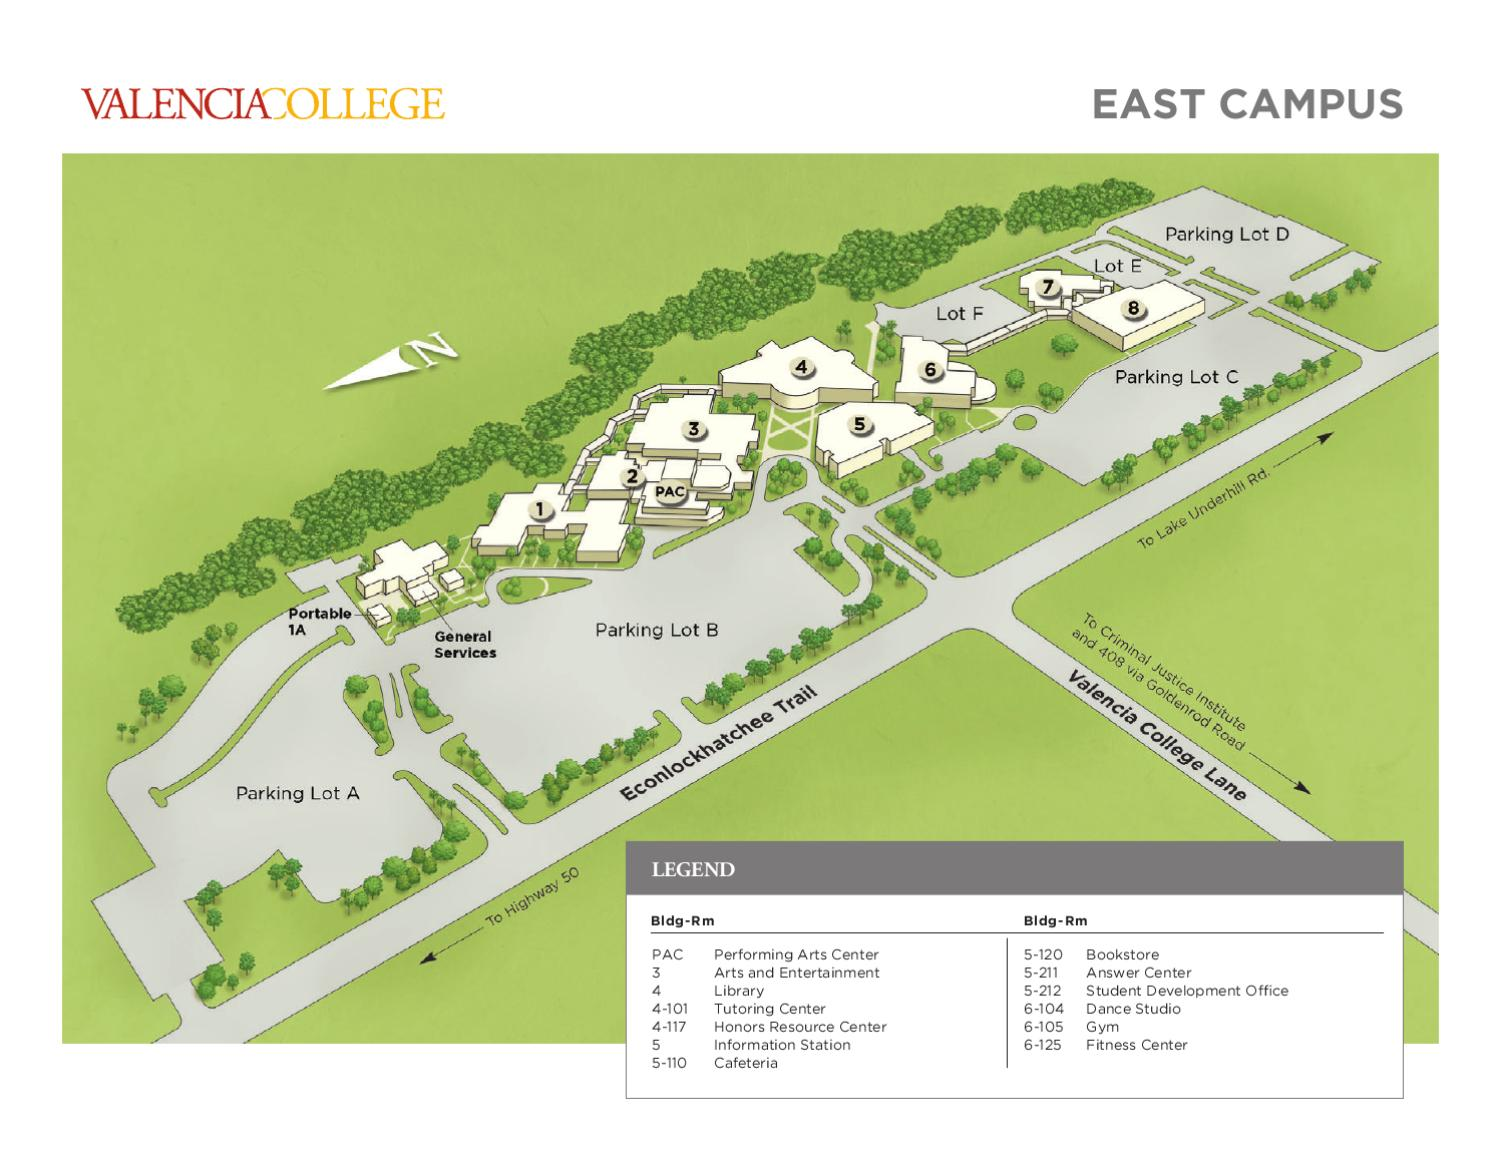 Valencia College Campus Map East By Valencia College Issuu